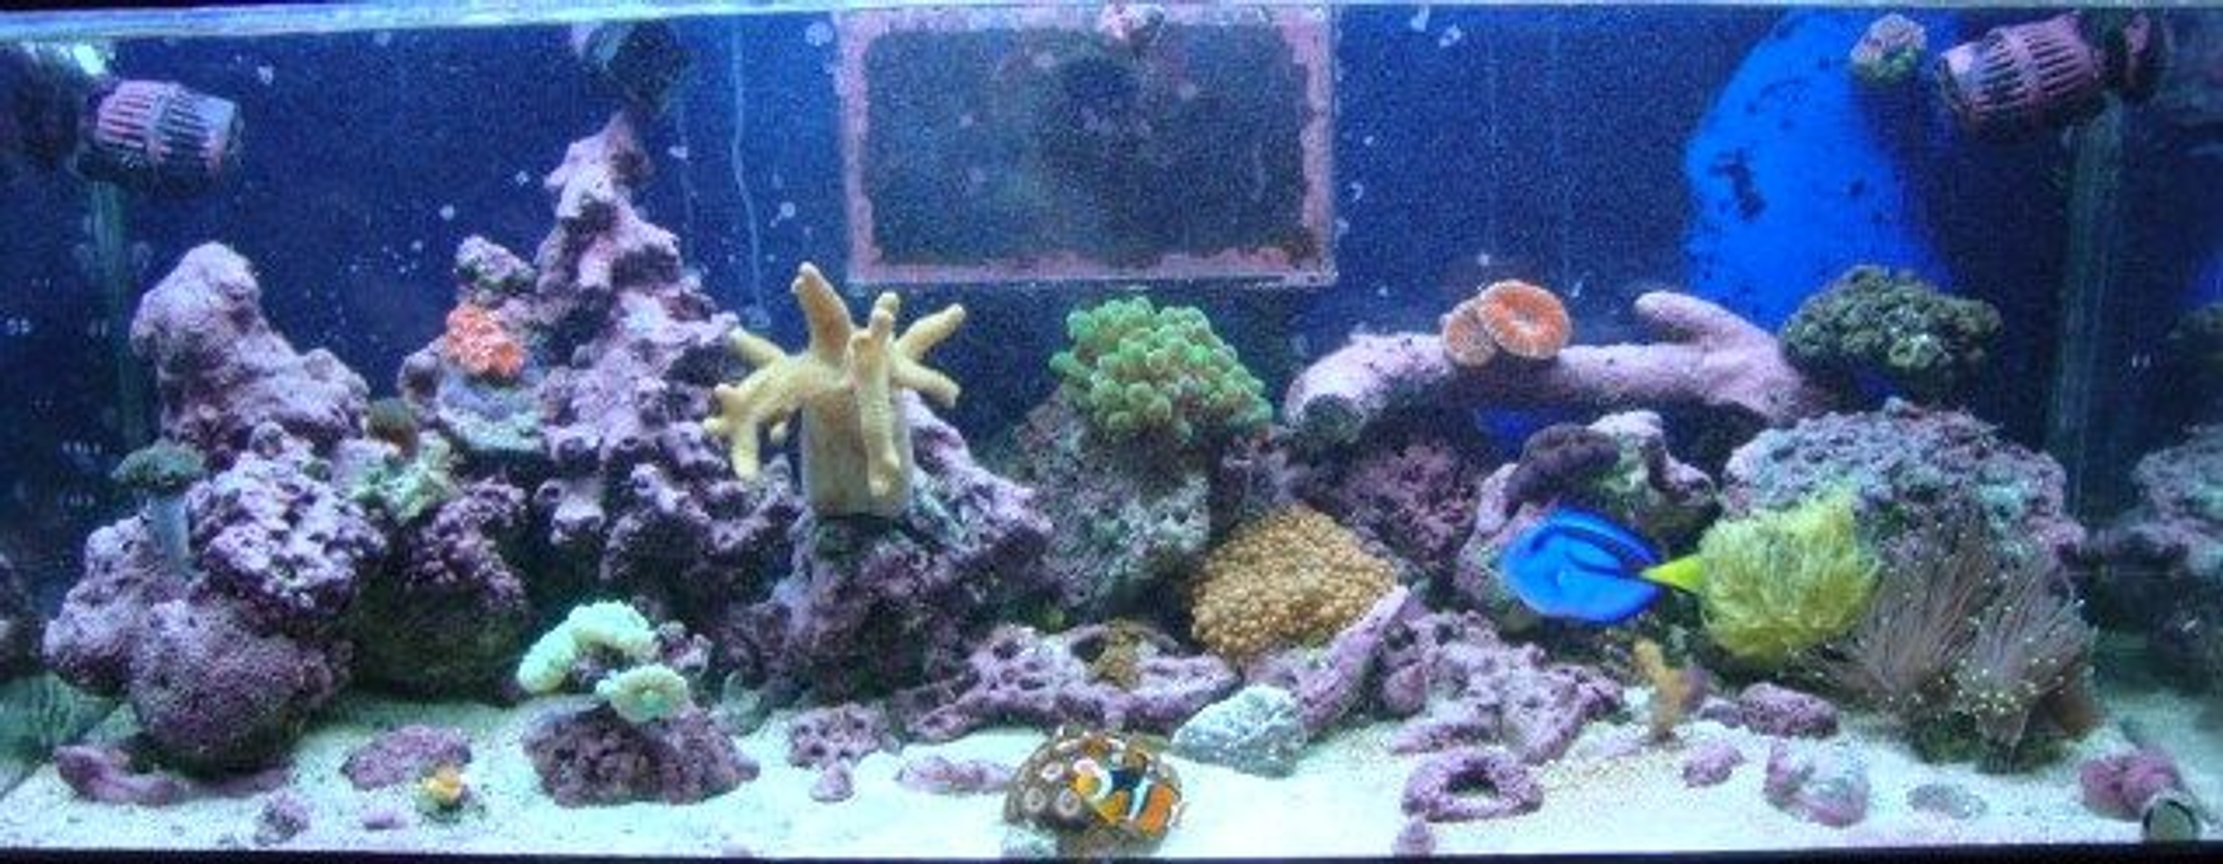 30 gallons reef tank (mostly live coral and fish) - My reef tank